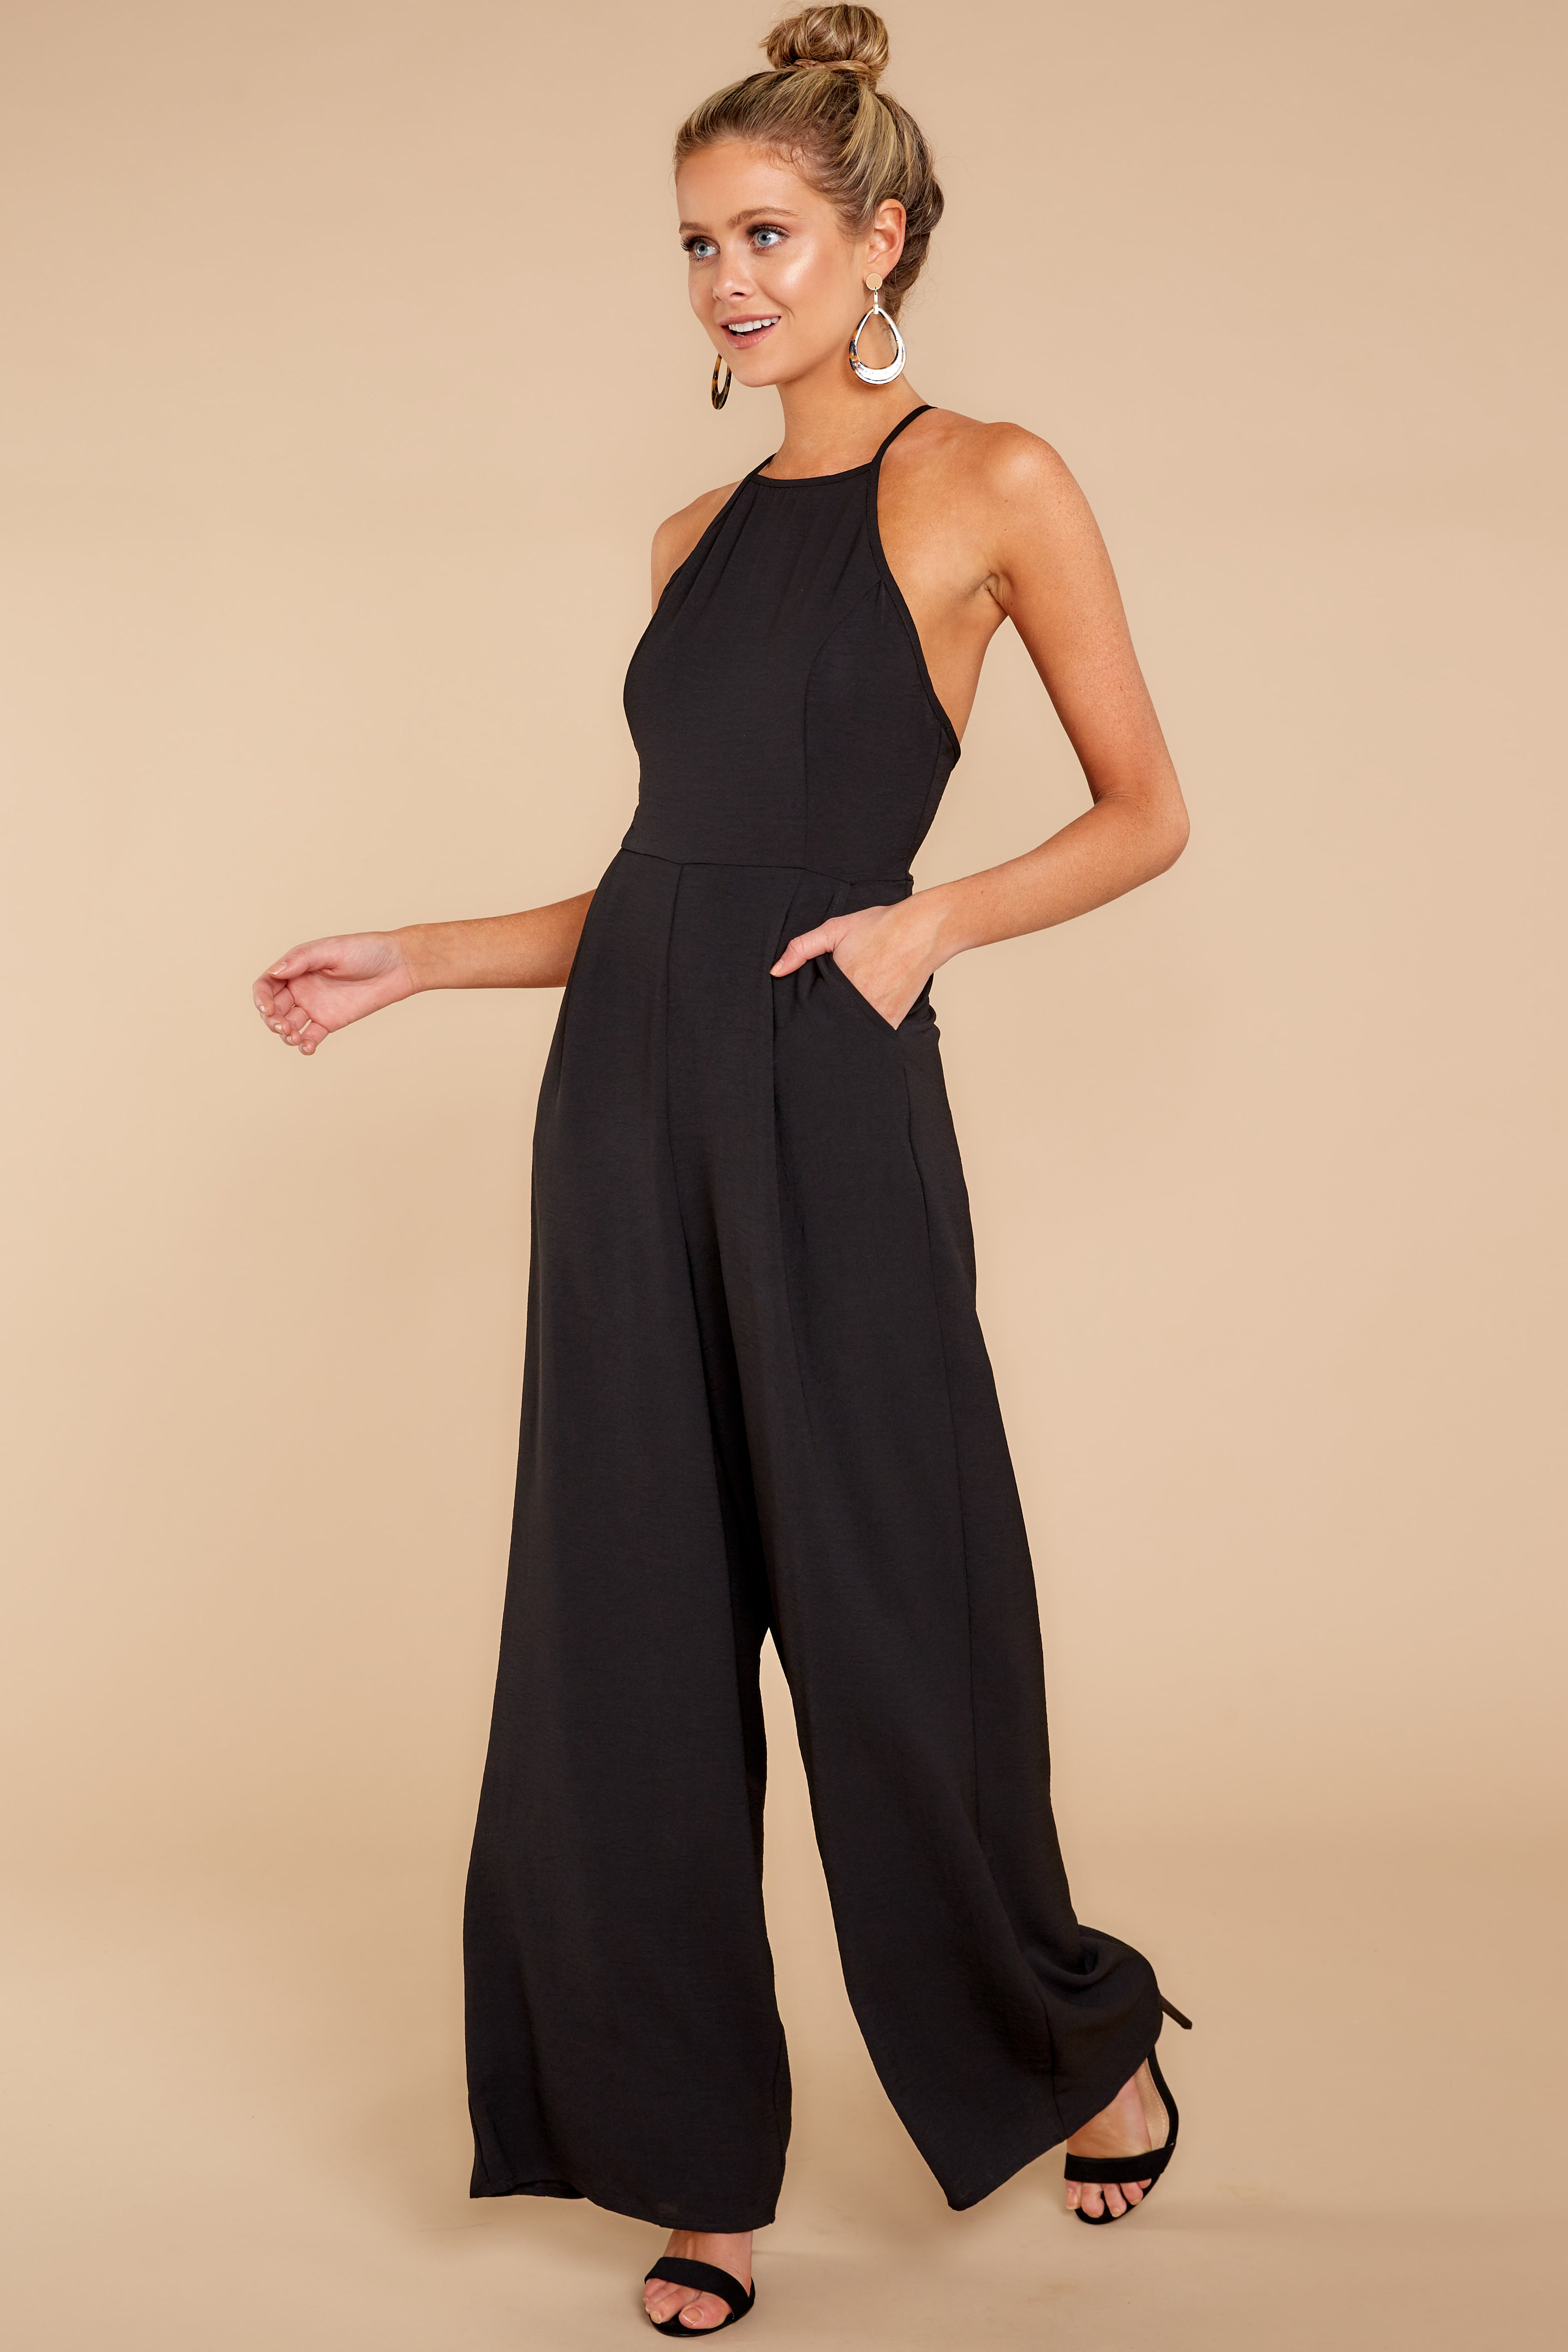 2 No More Games Black Jumpsuit at reddressboutique.com